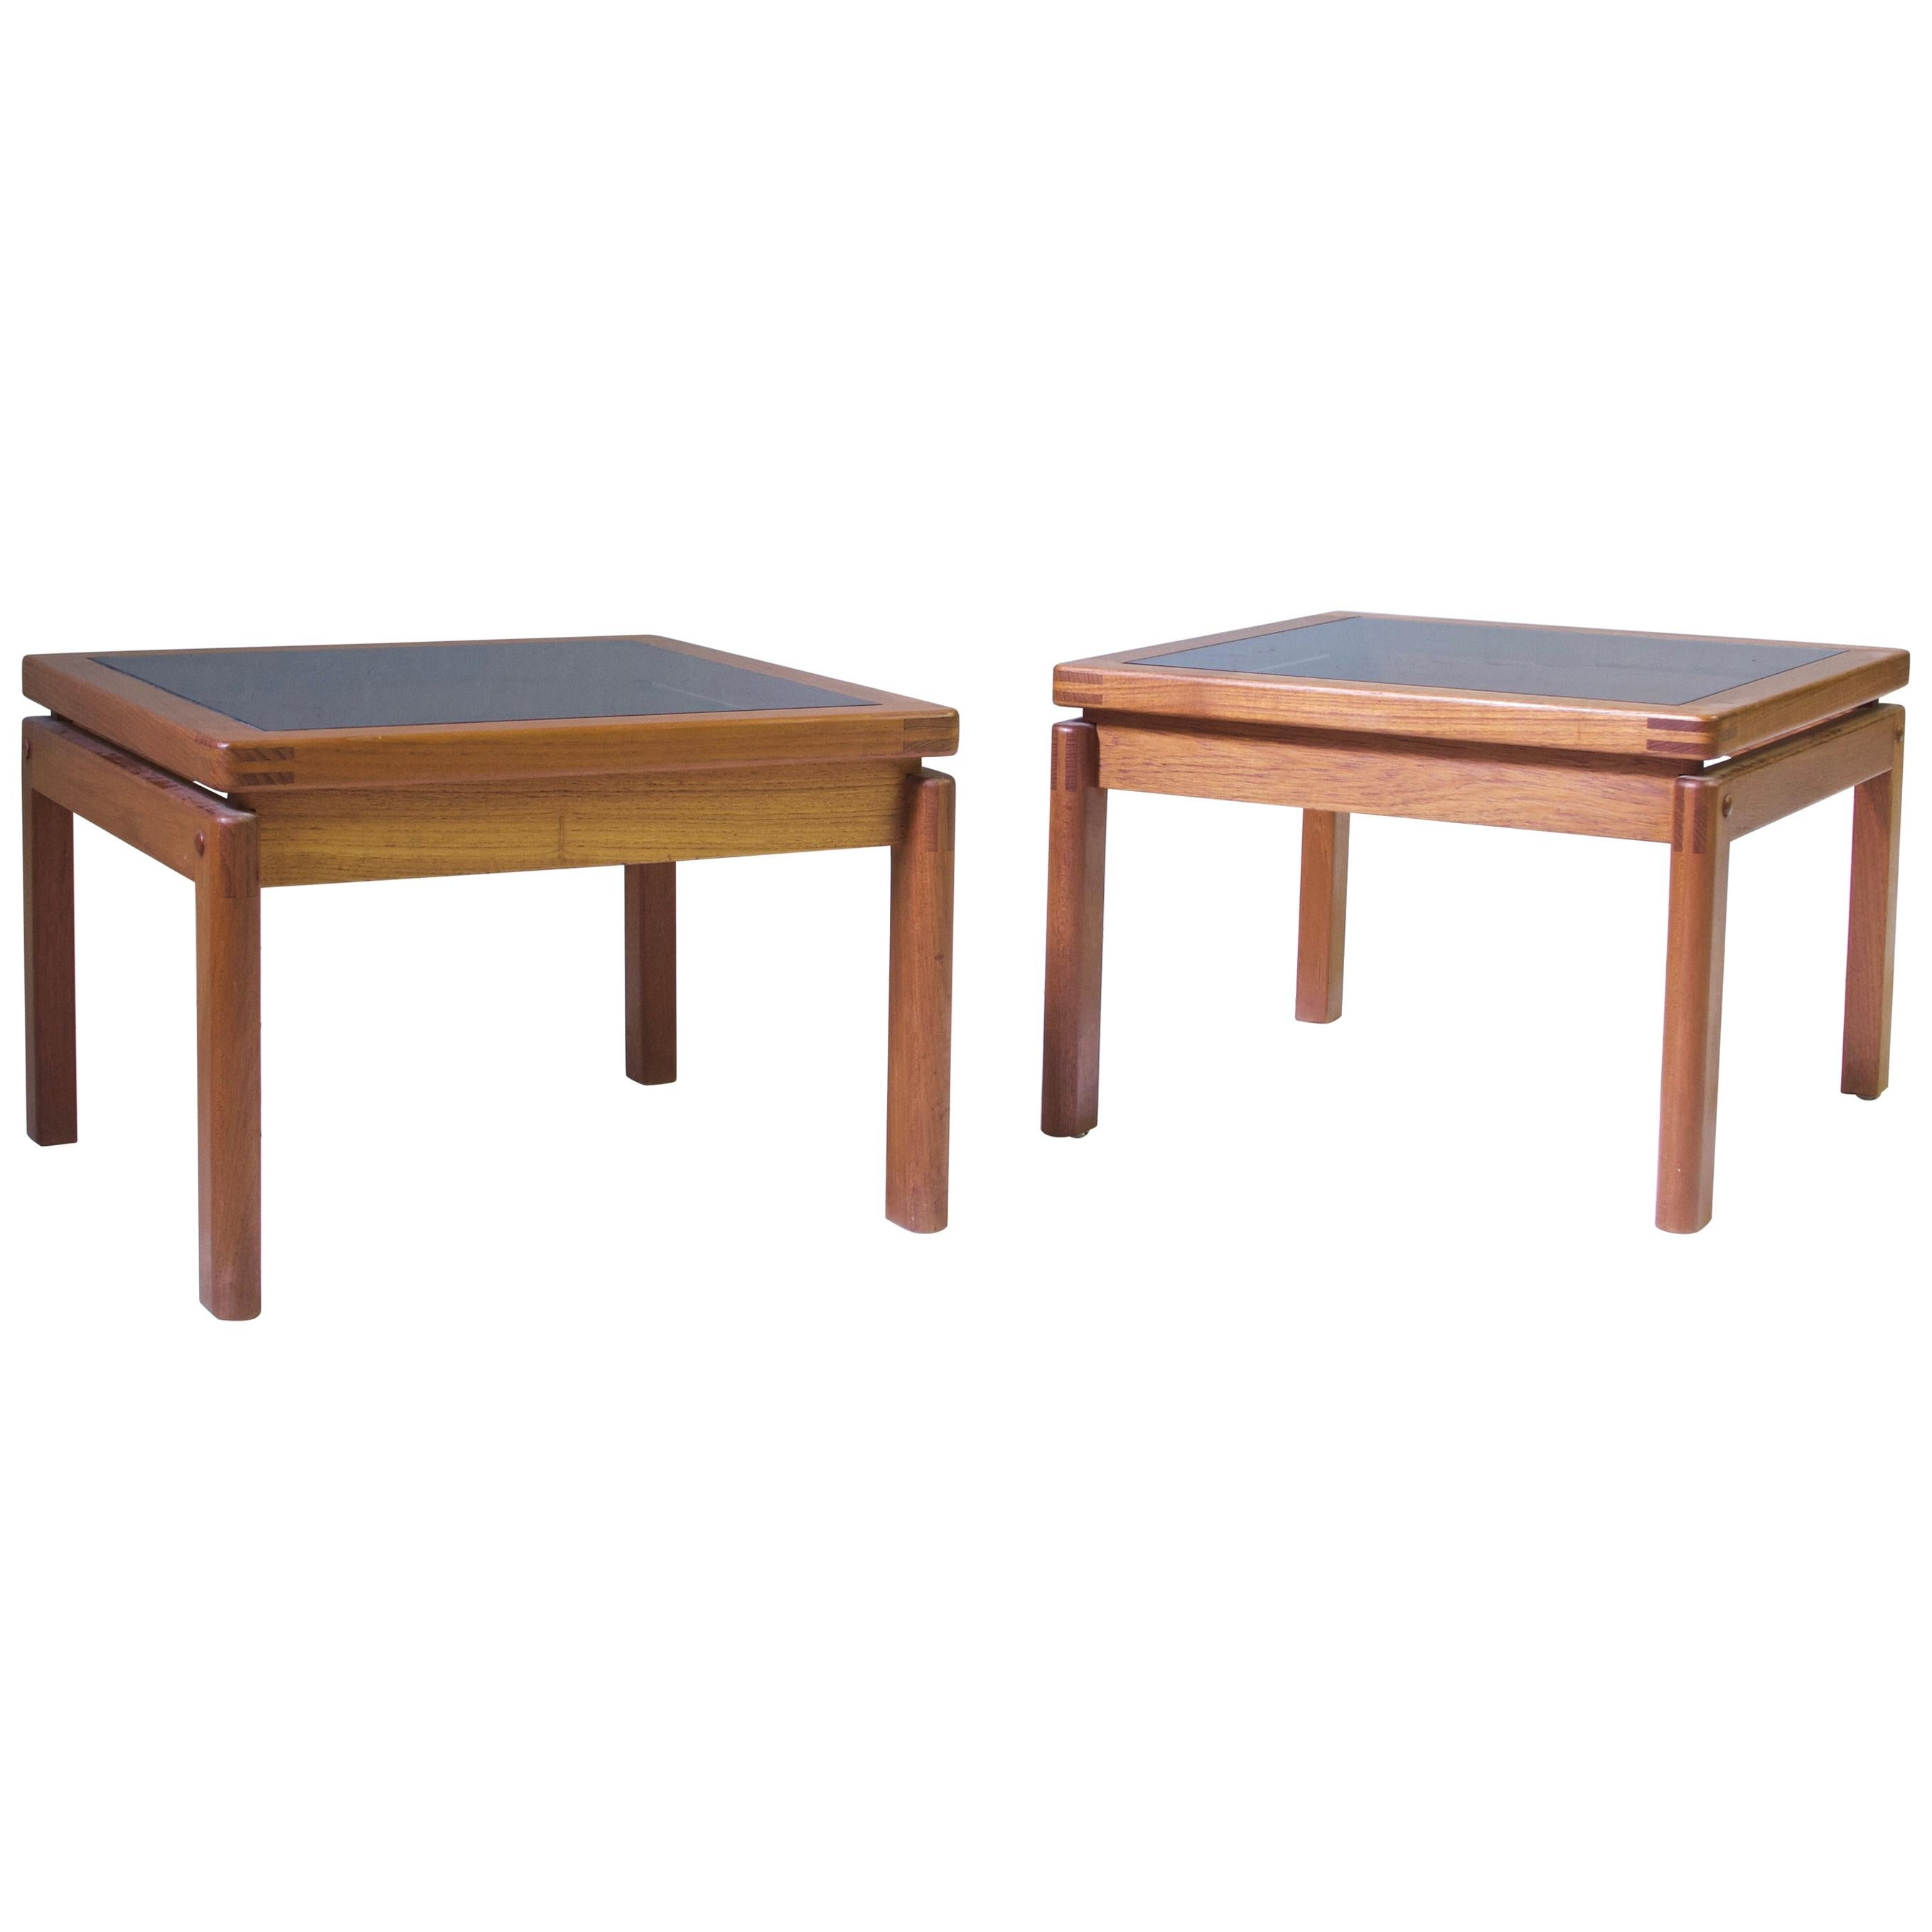 Vintage Pair of Signed Danish Side Tables with Exposed Joinery in Teak, 1960s